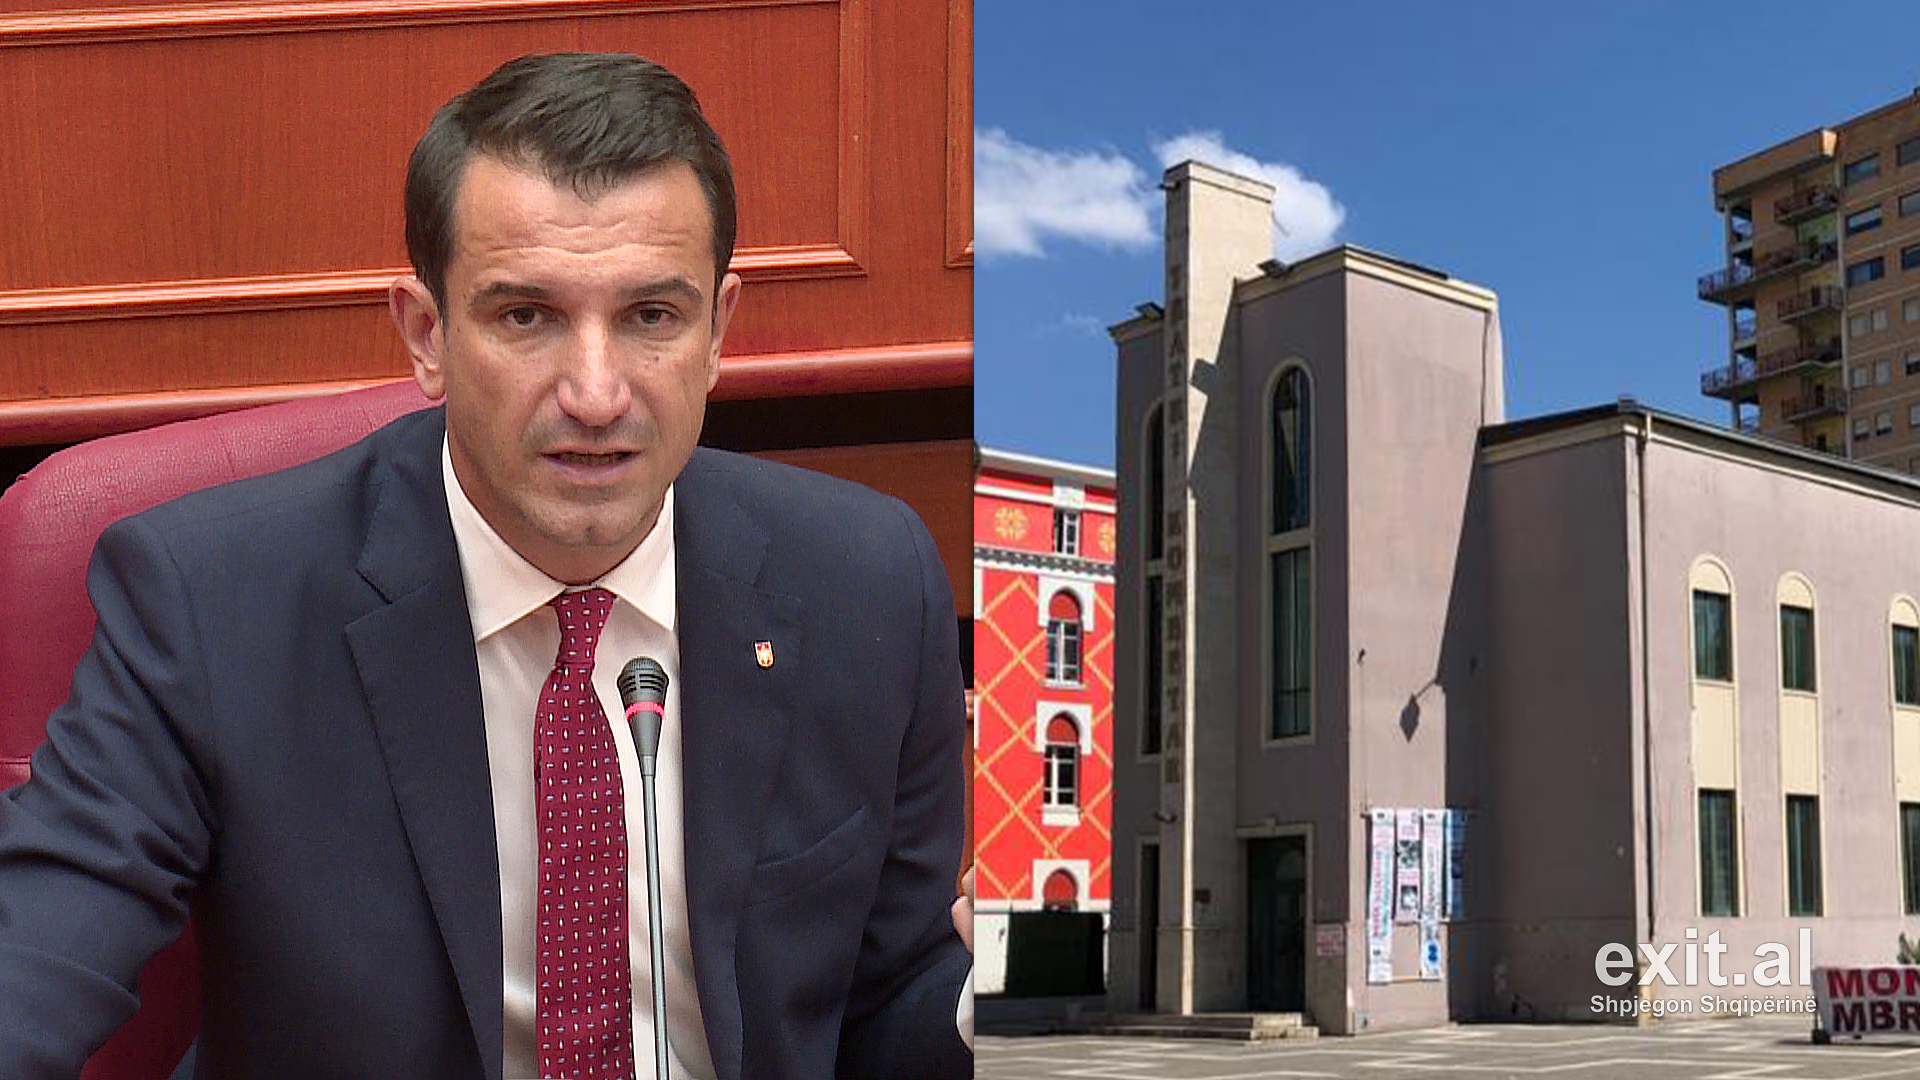 Tirana Mayor Erion Veliaj Determined to Demolish National Theatre